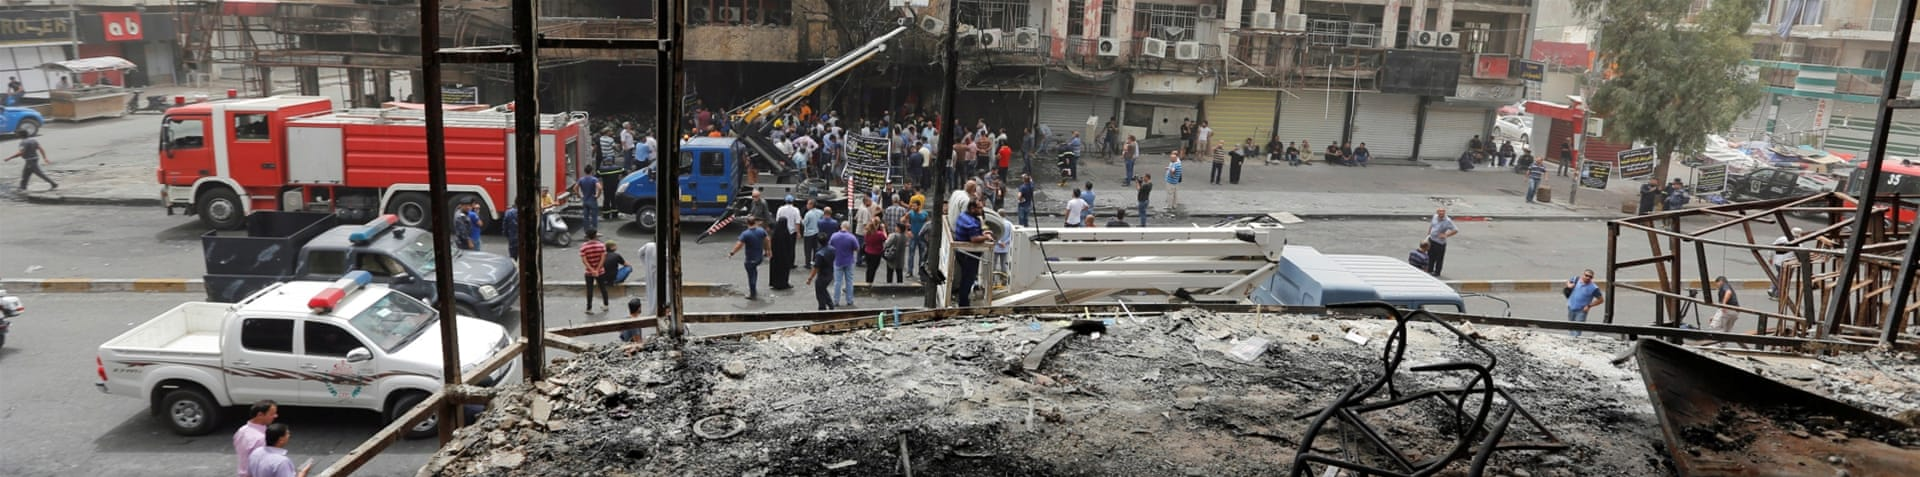 The death toll from the car bombing attack in Karada rose to 250 [Ahmed Saad/Reuters]